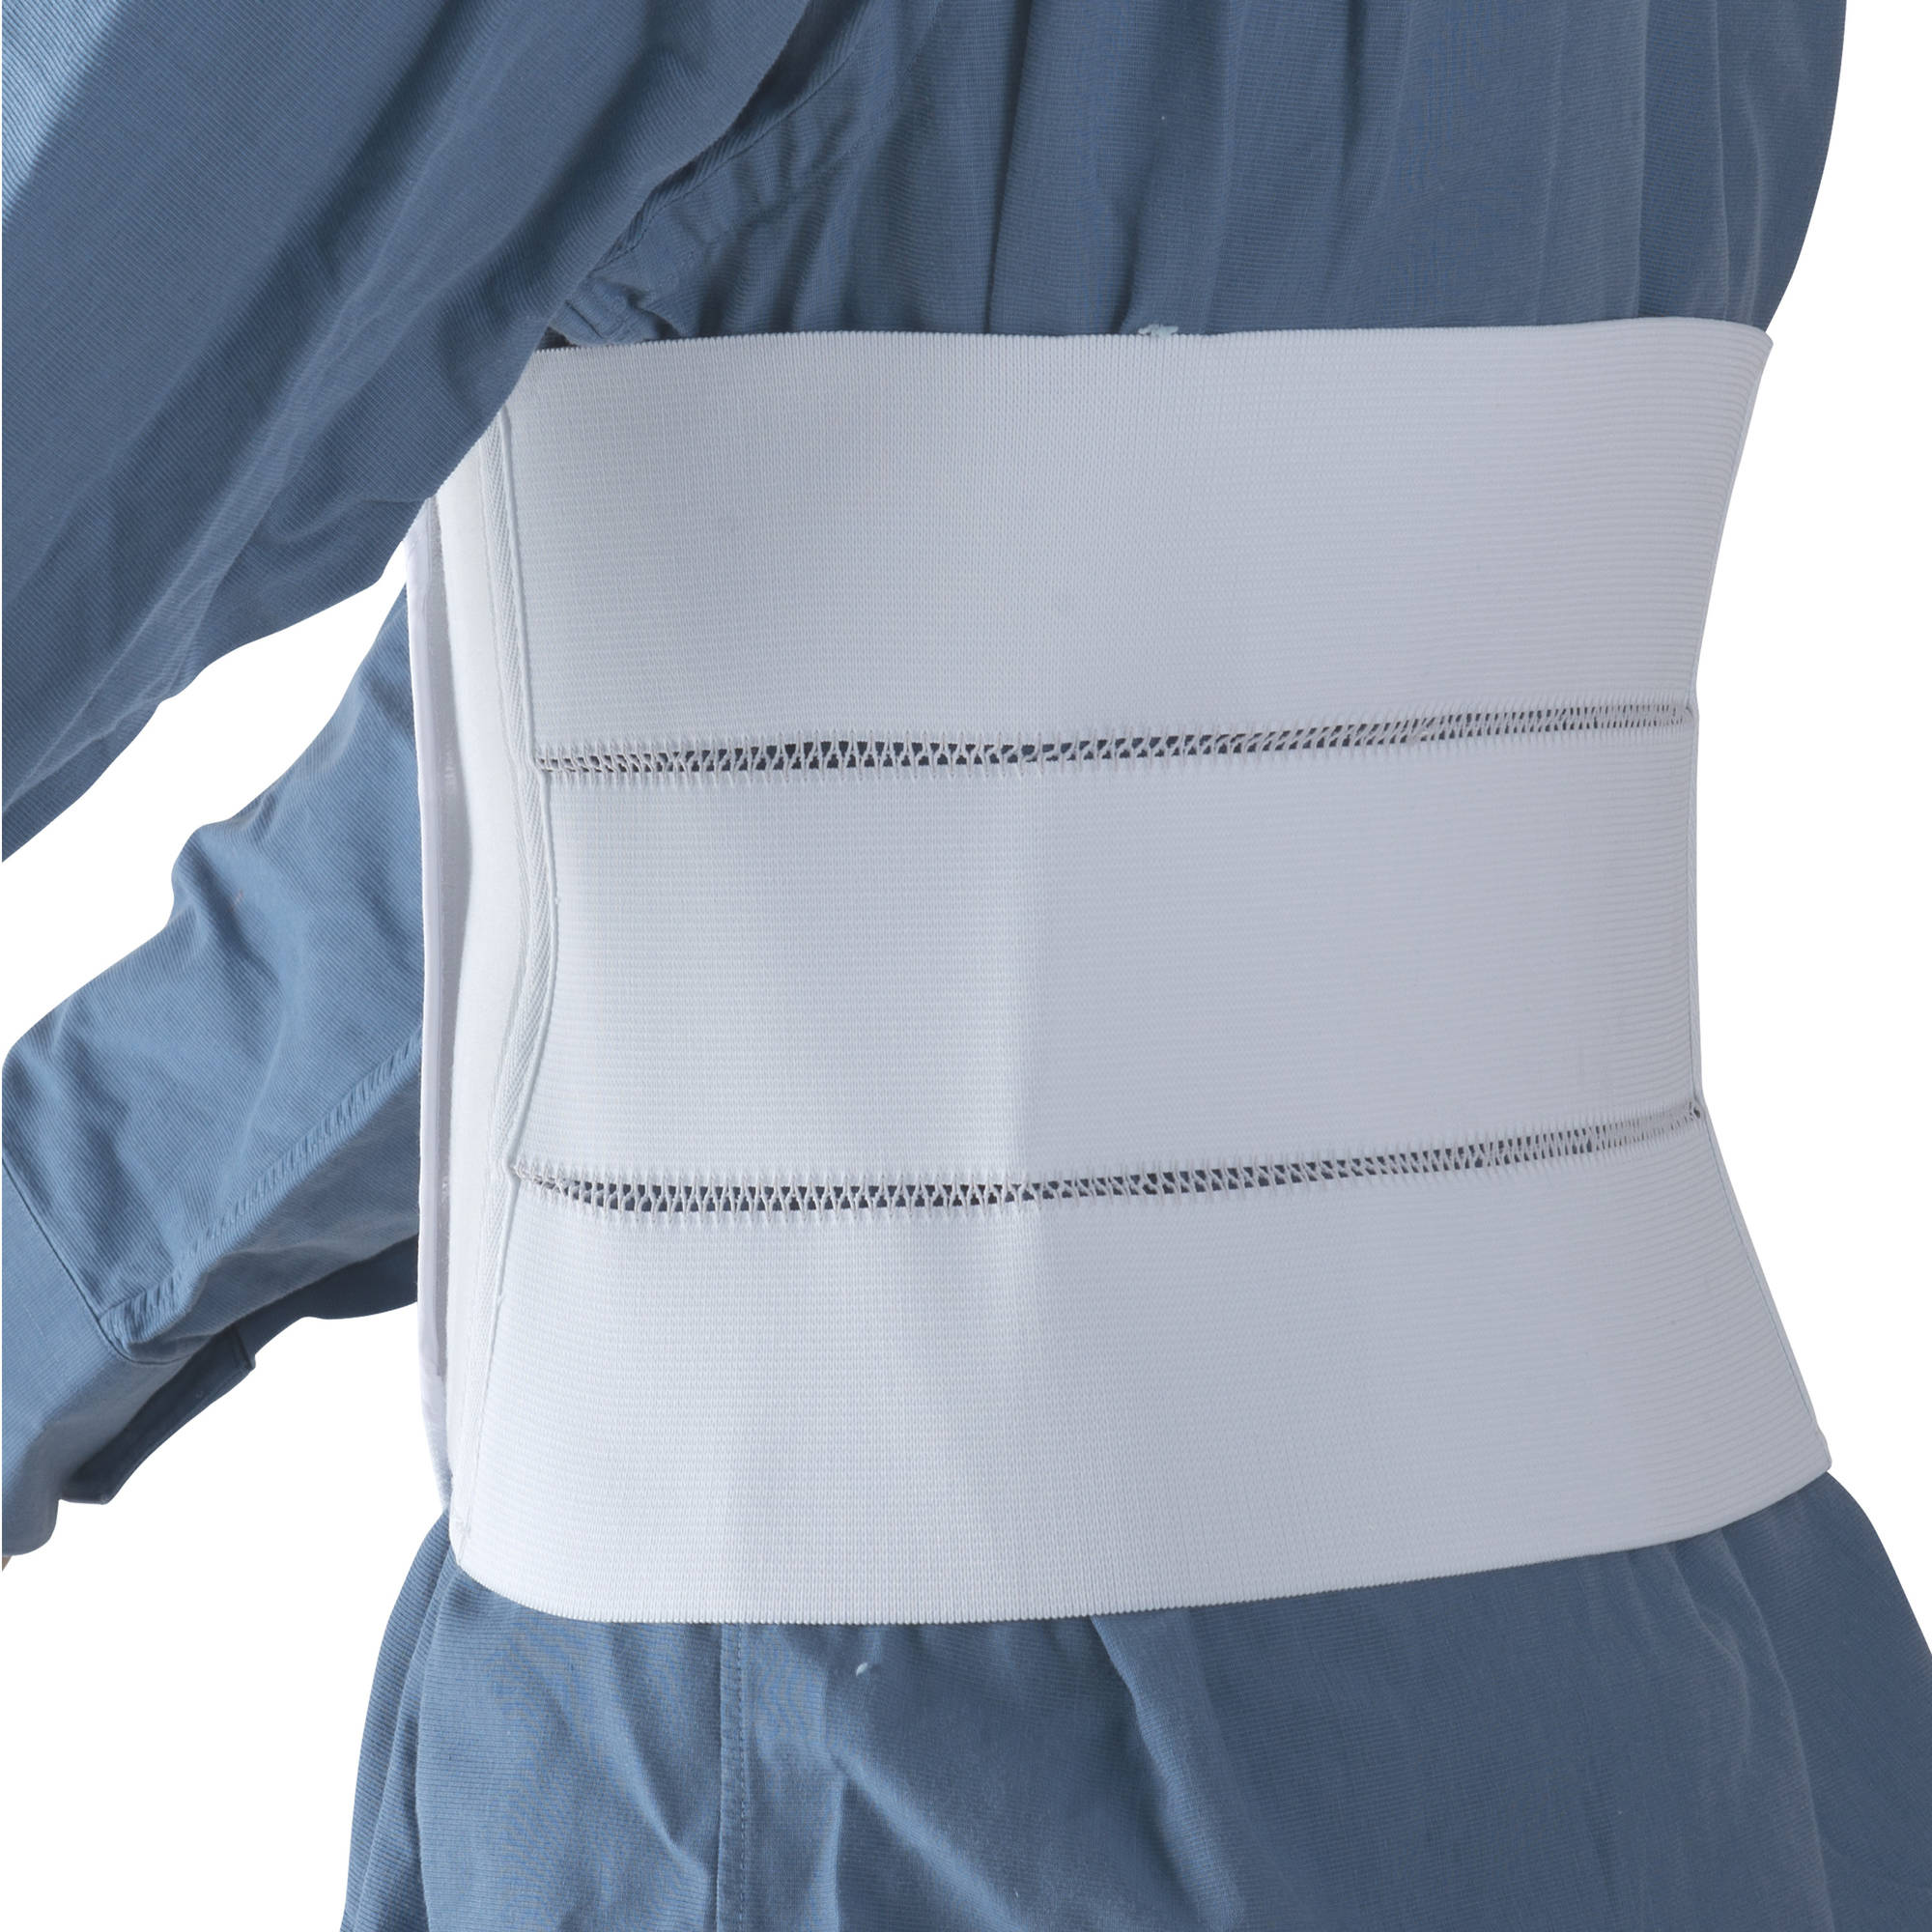 "DMI Elastic Abdominal Binder for Men and Women, 3 Panel, 9"", 30-45"" Waist Size"